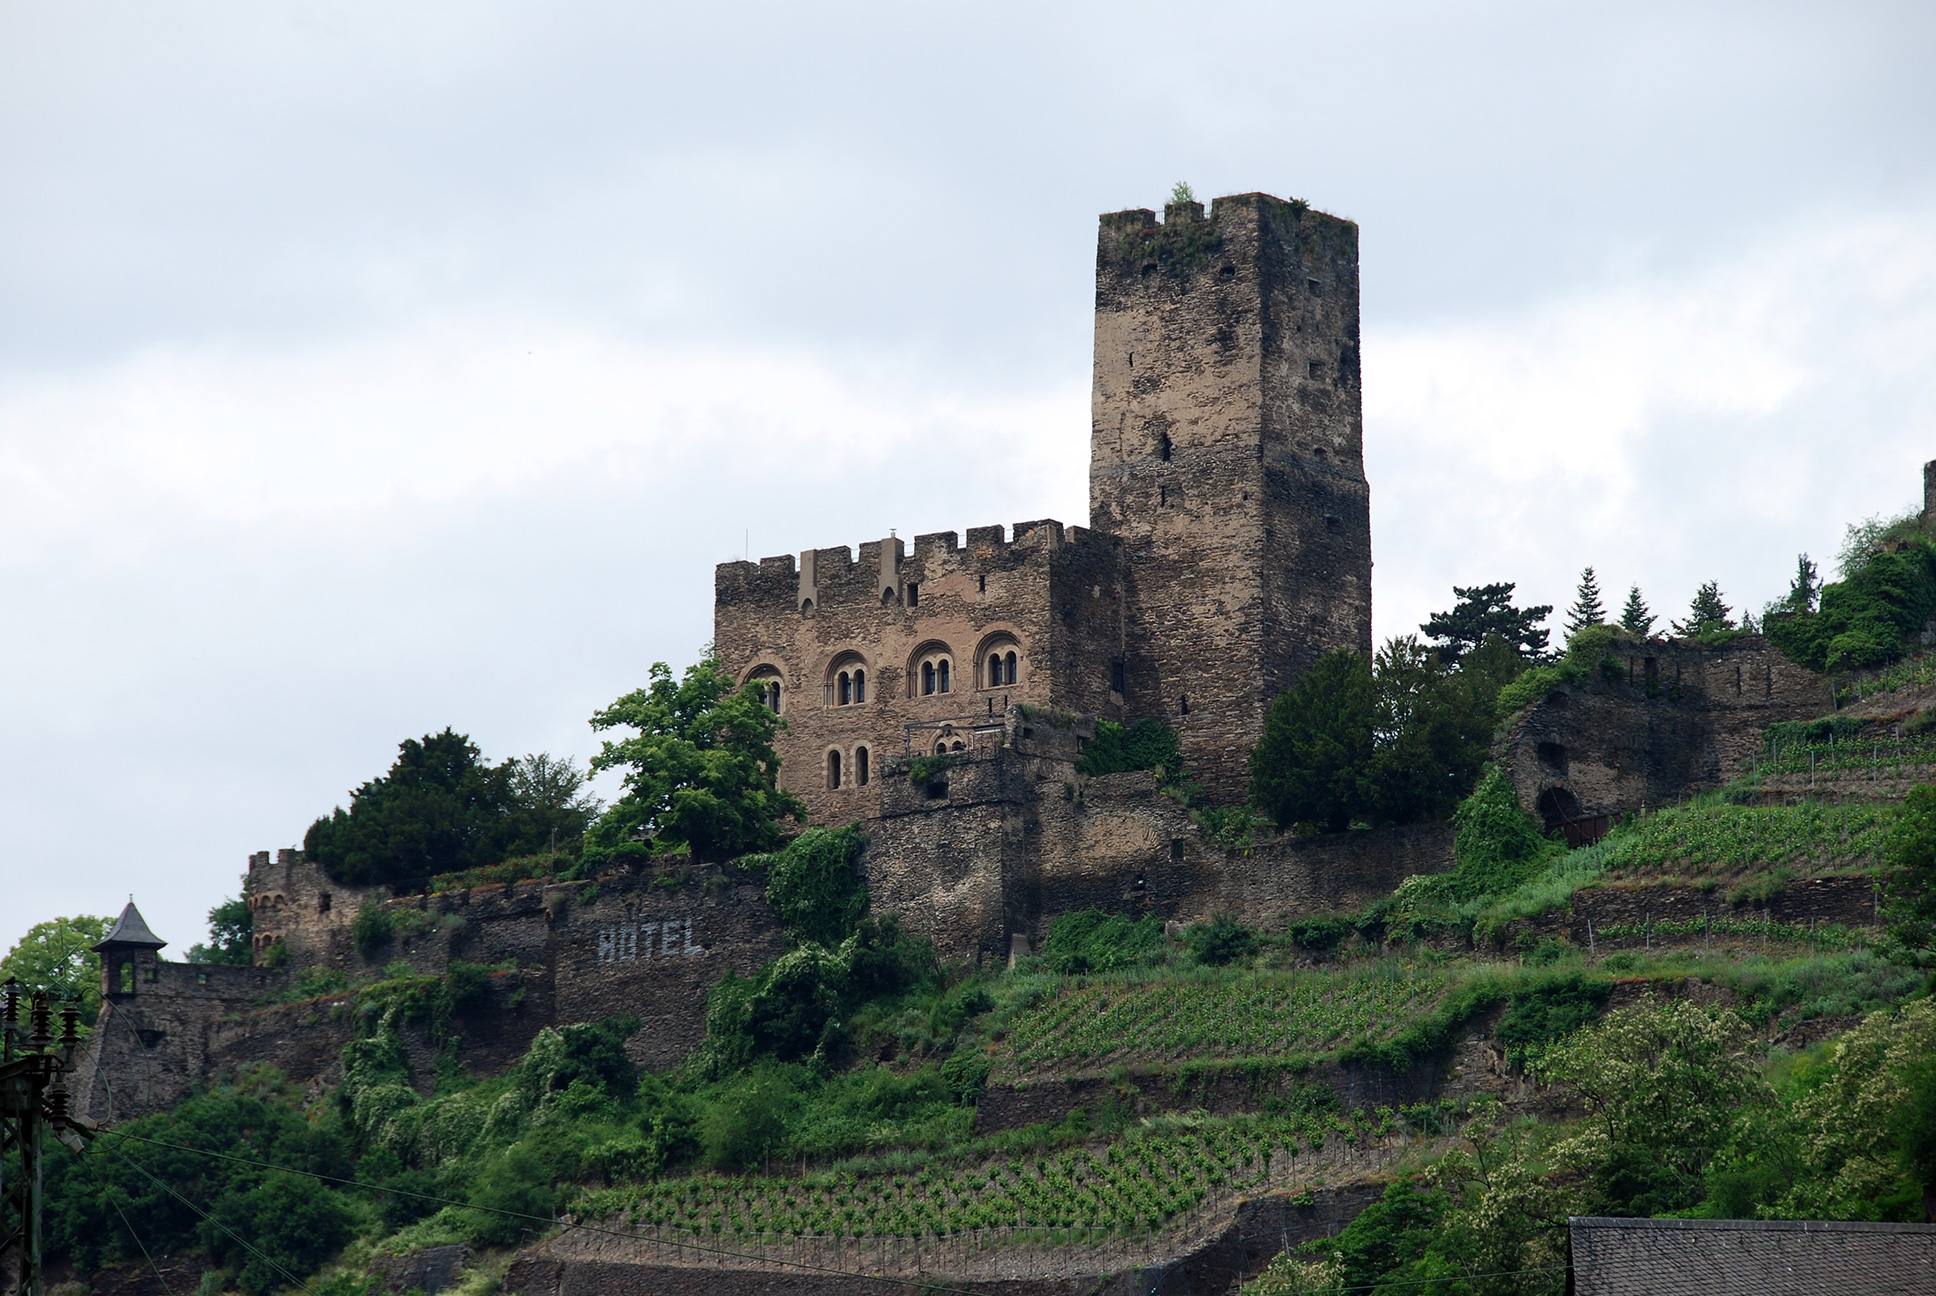 Great Castles - Gallery - Burg Gutenfels - Rheinland-Pfalz Germany: https://great-castles.com/gutenfelsgallery.php